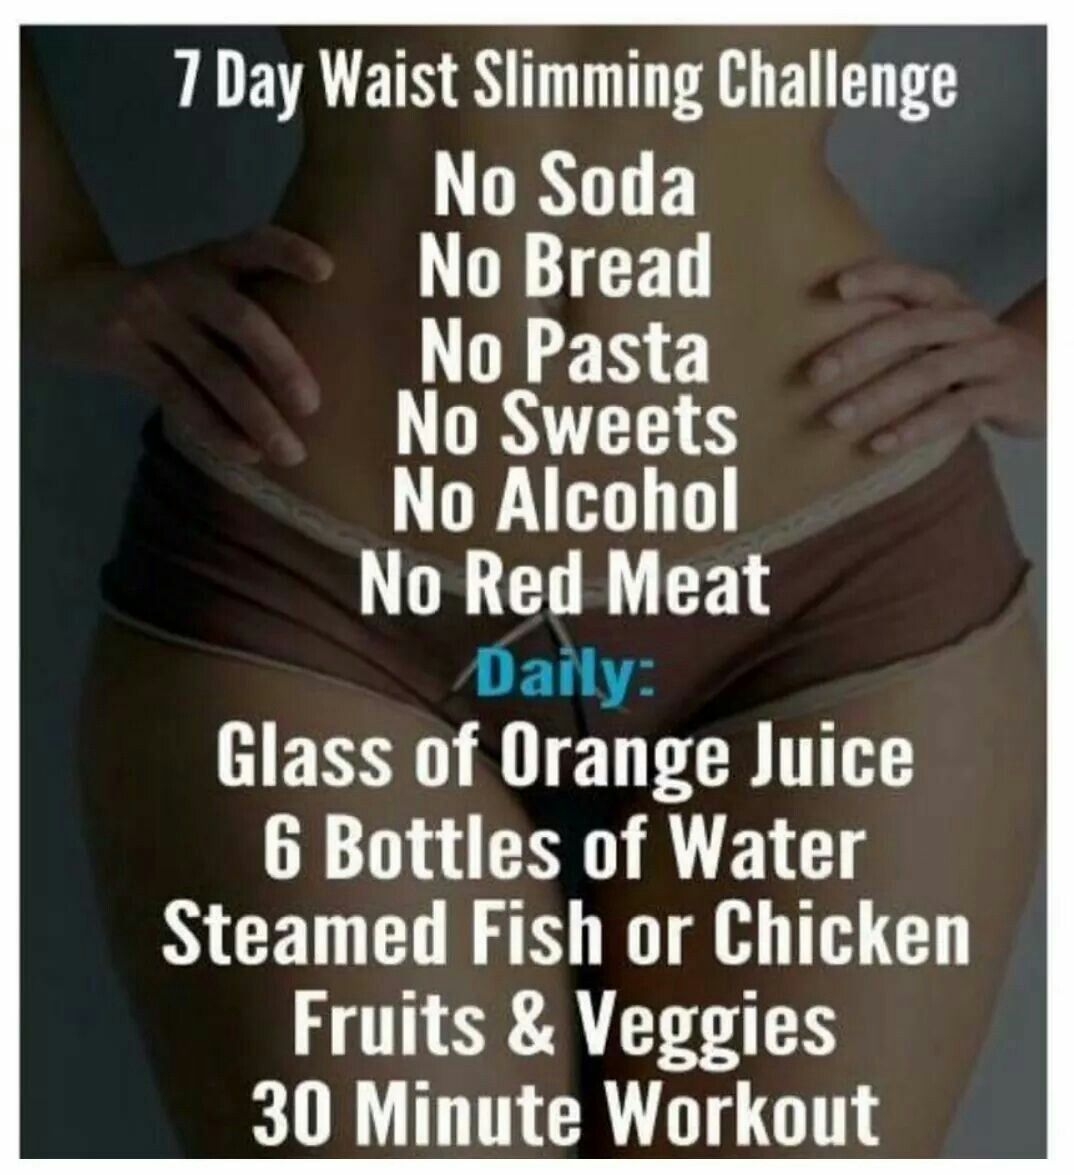 Best ways to lose water weight overnight image 7